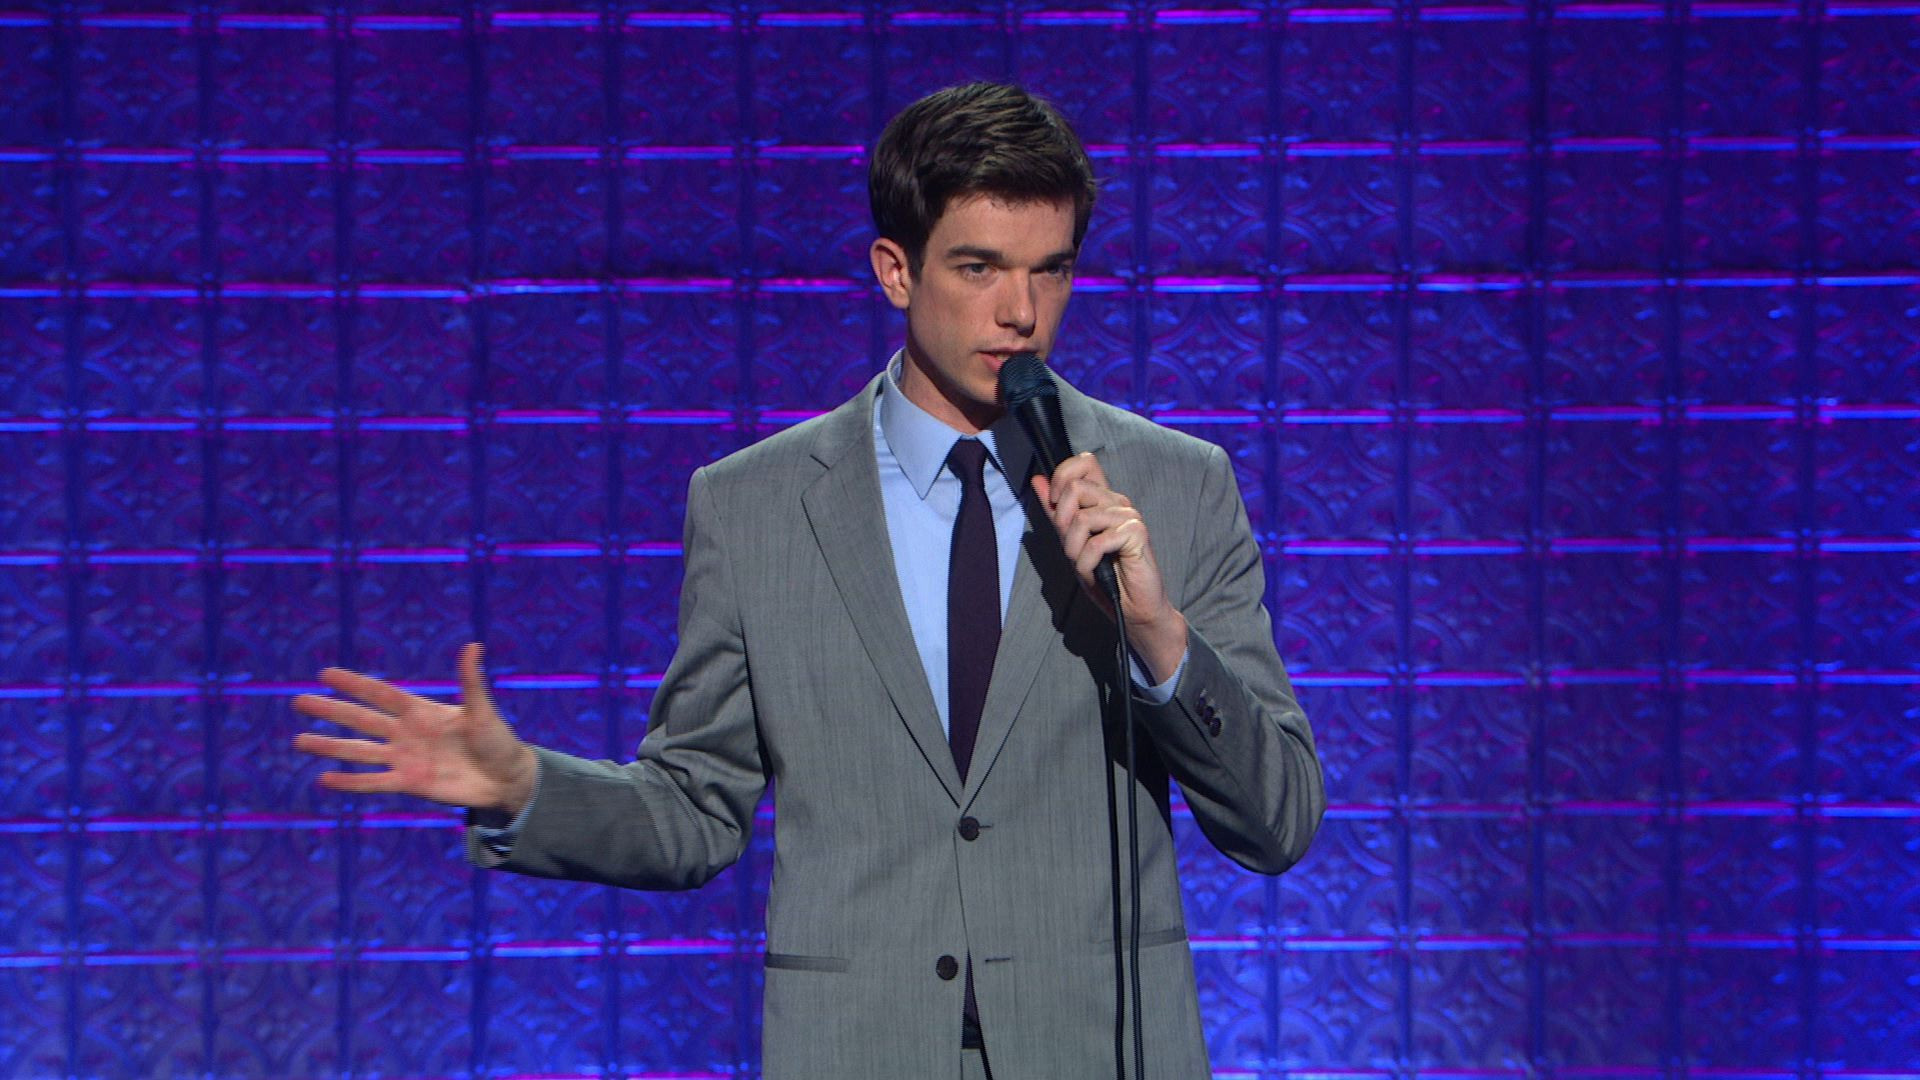 John Mulaney - Wonderful Girlfriend